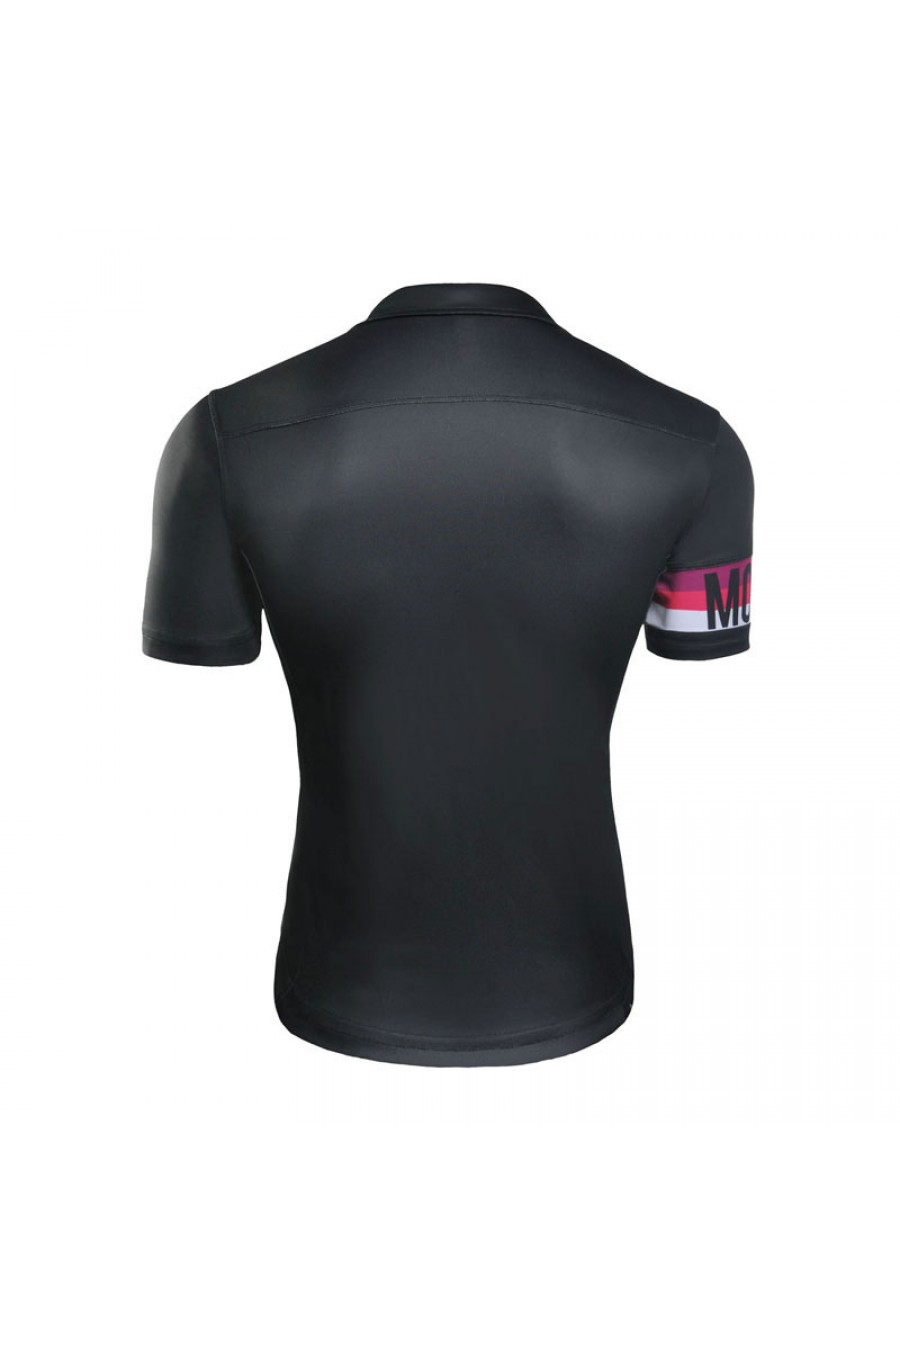 mens cool quick dry polyester black bike sports polo